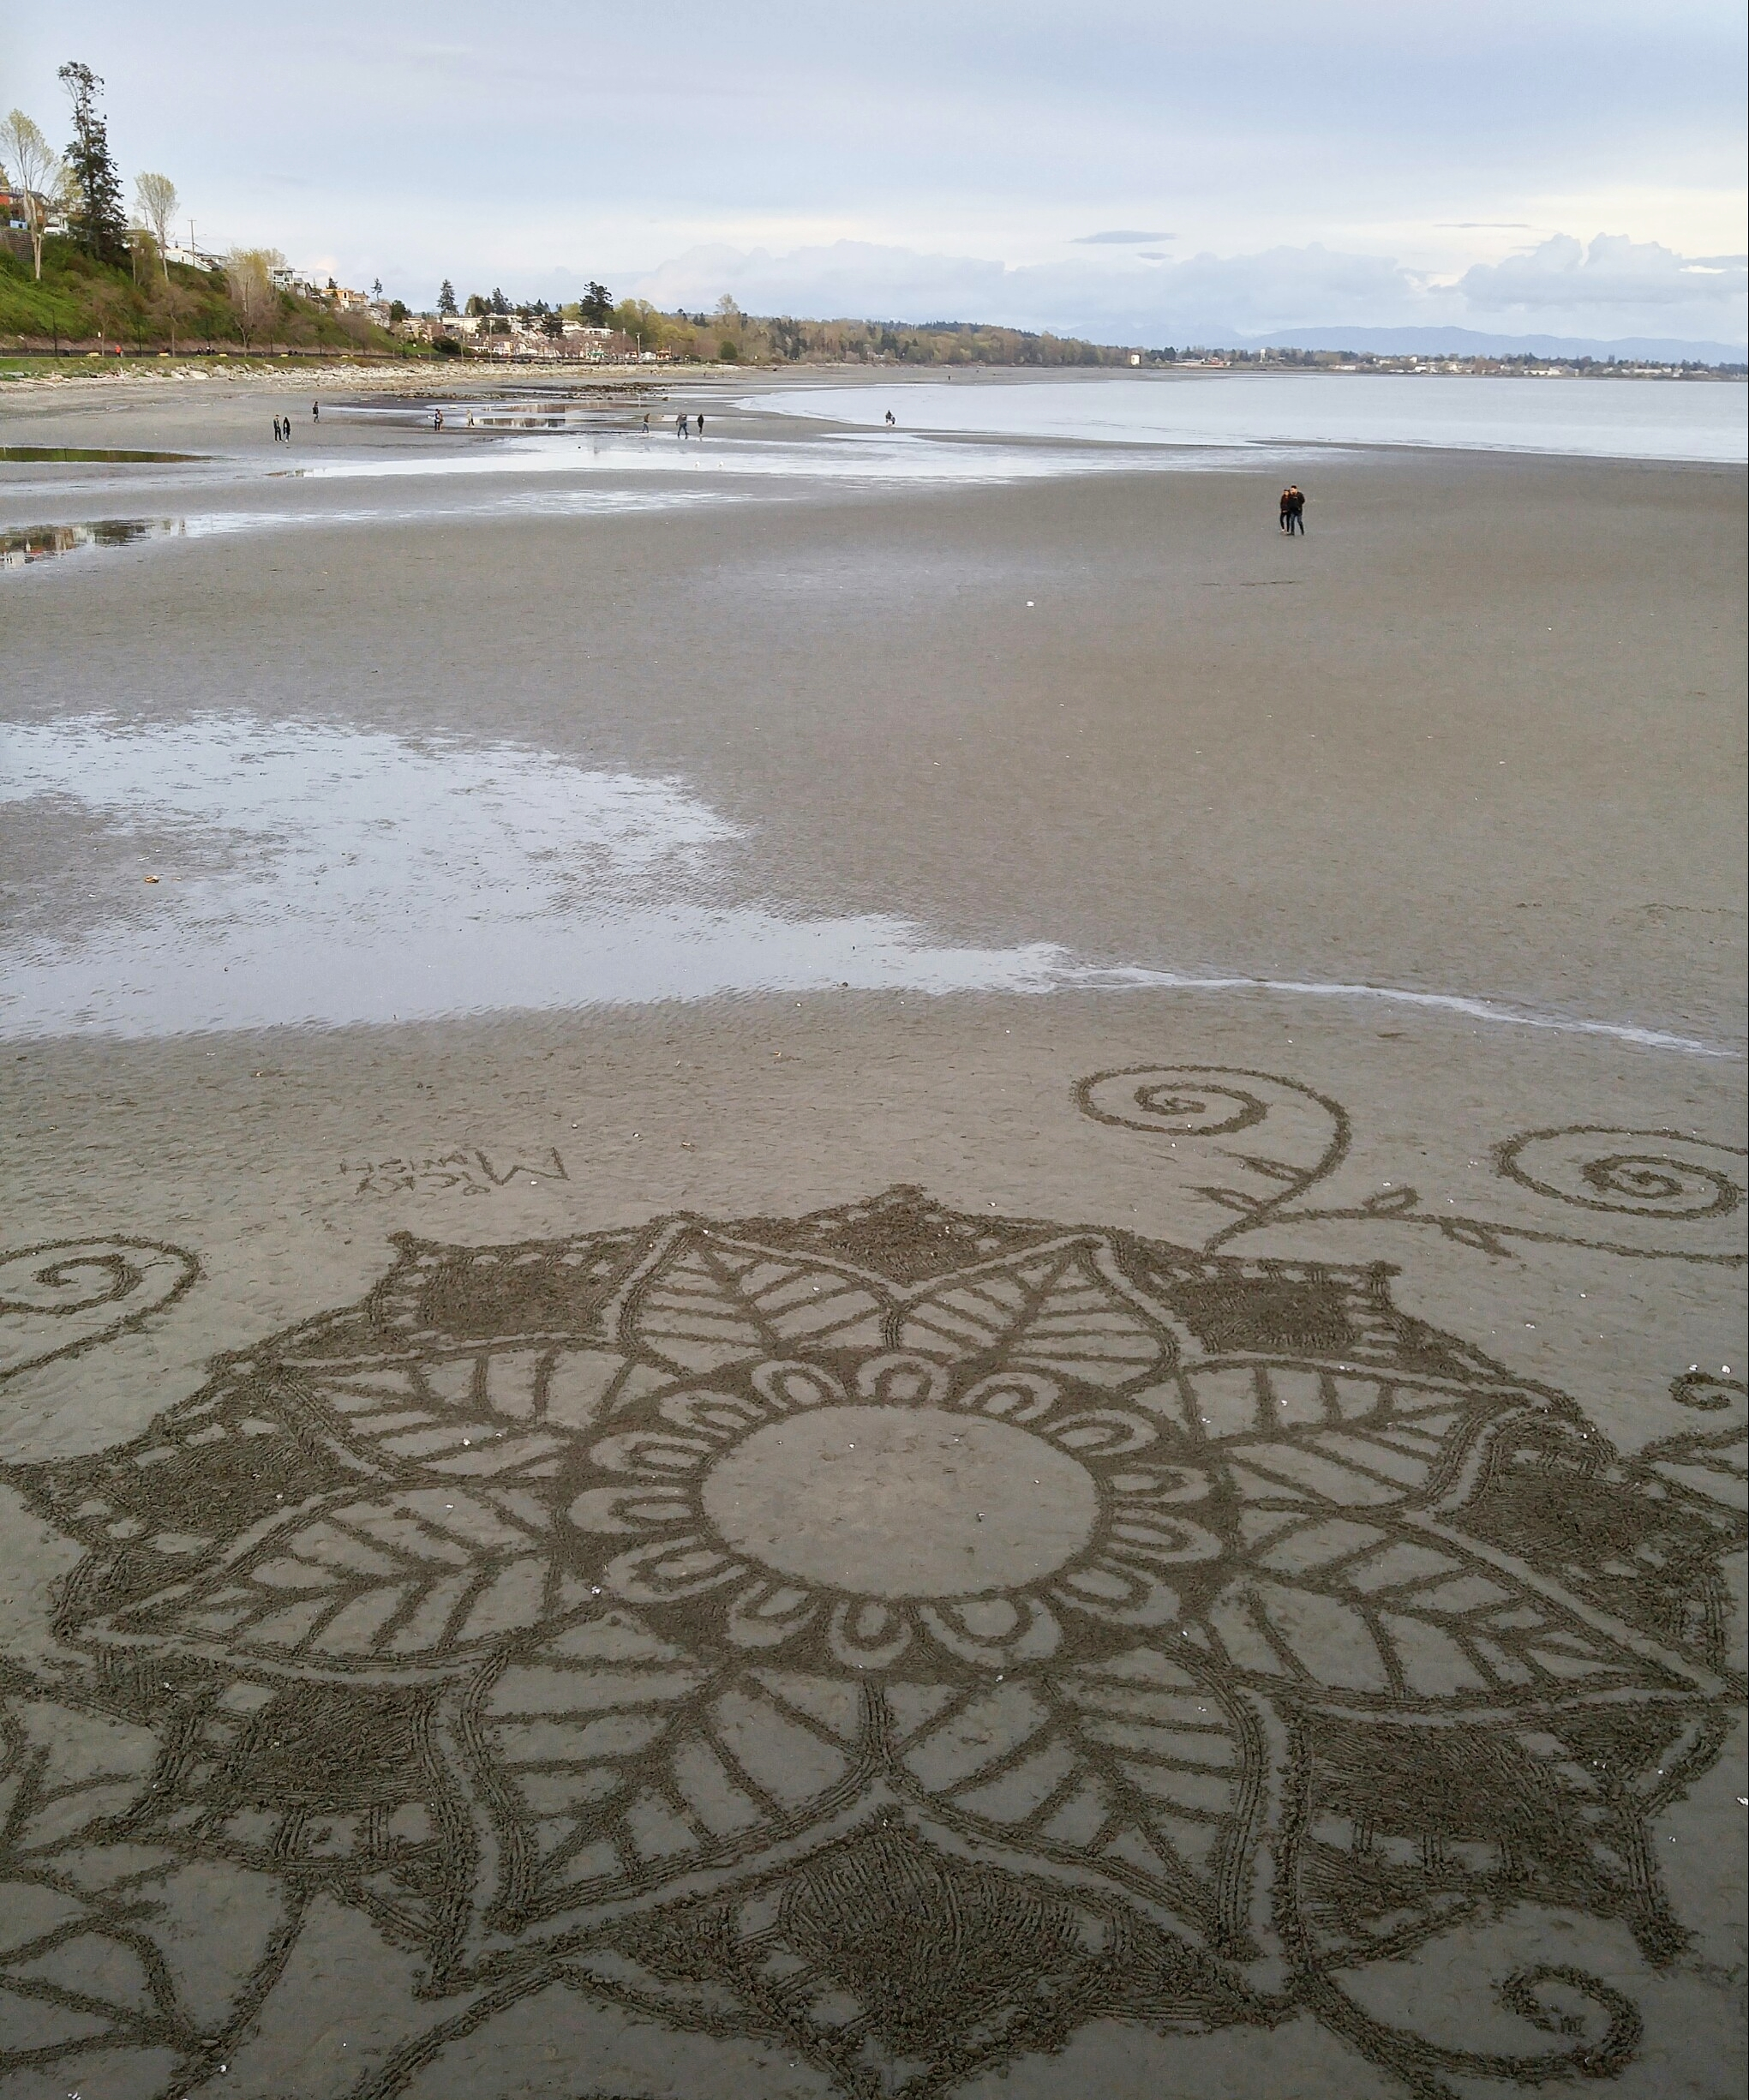 #Pierdoodles. These wonderful designs appear anonymously at low tide, and are erased when the tide comes back in. Talk about an inexpensive reusable canvas!